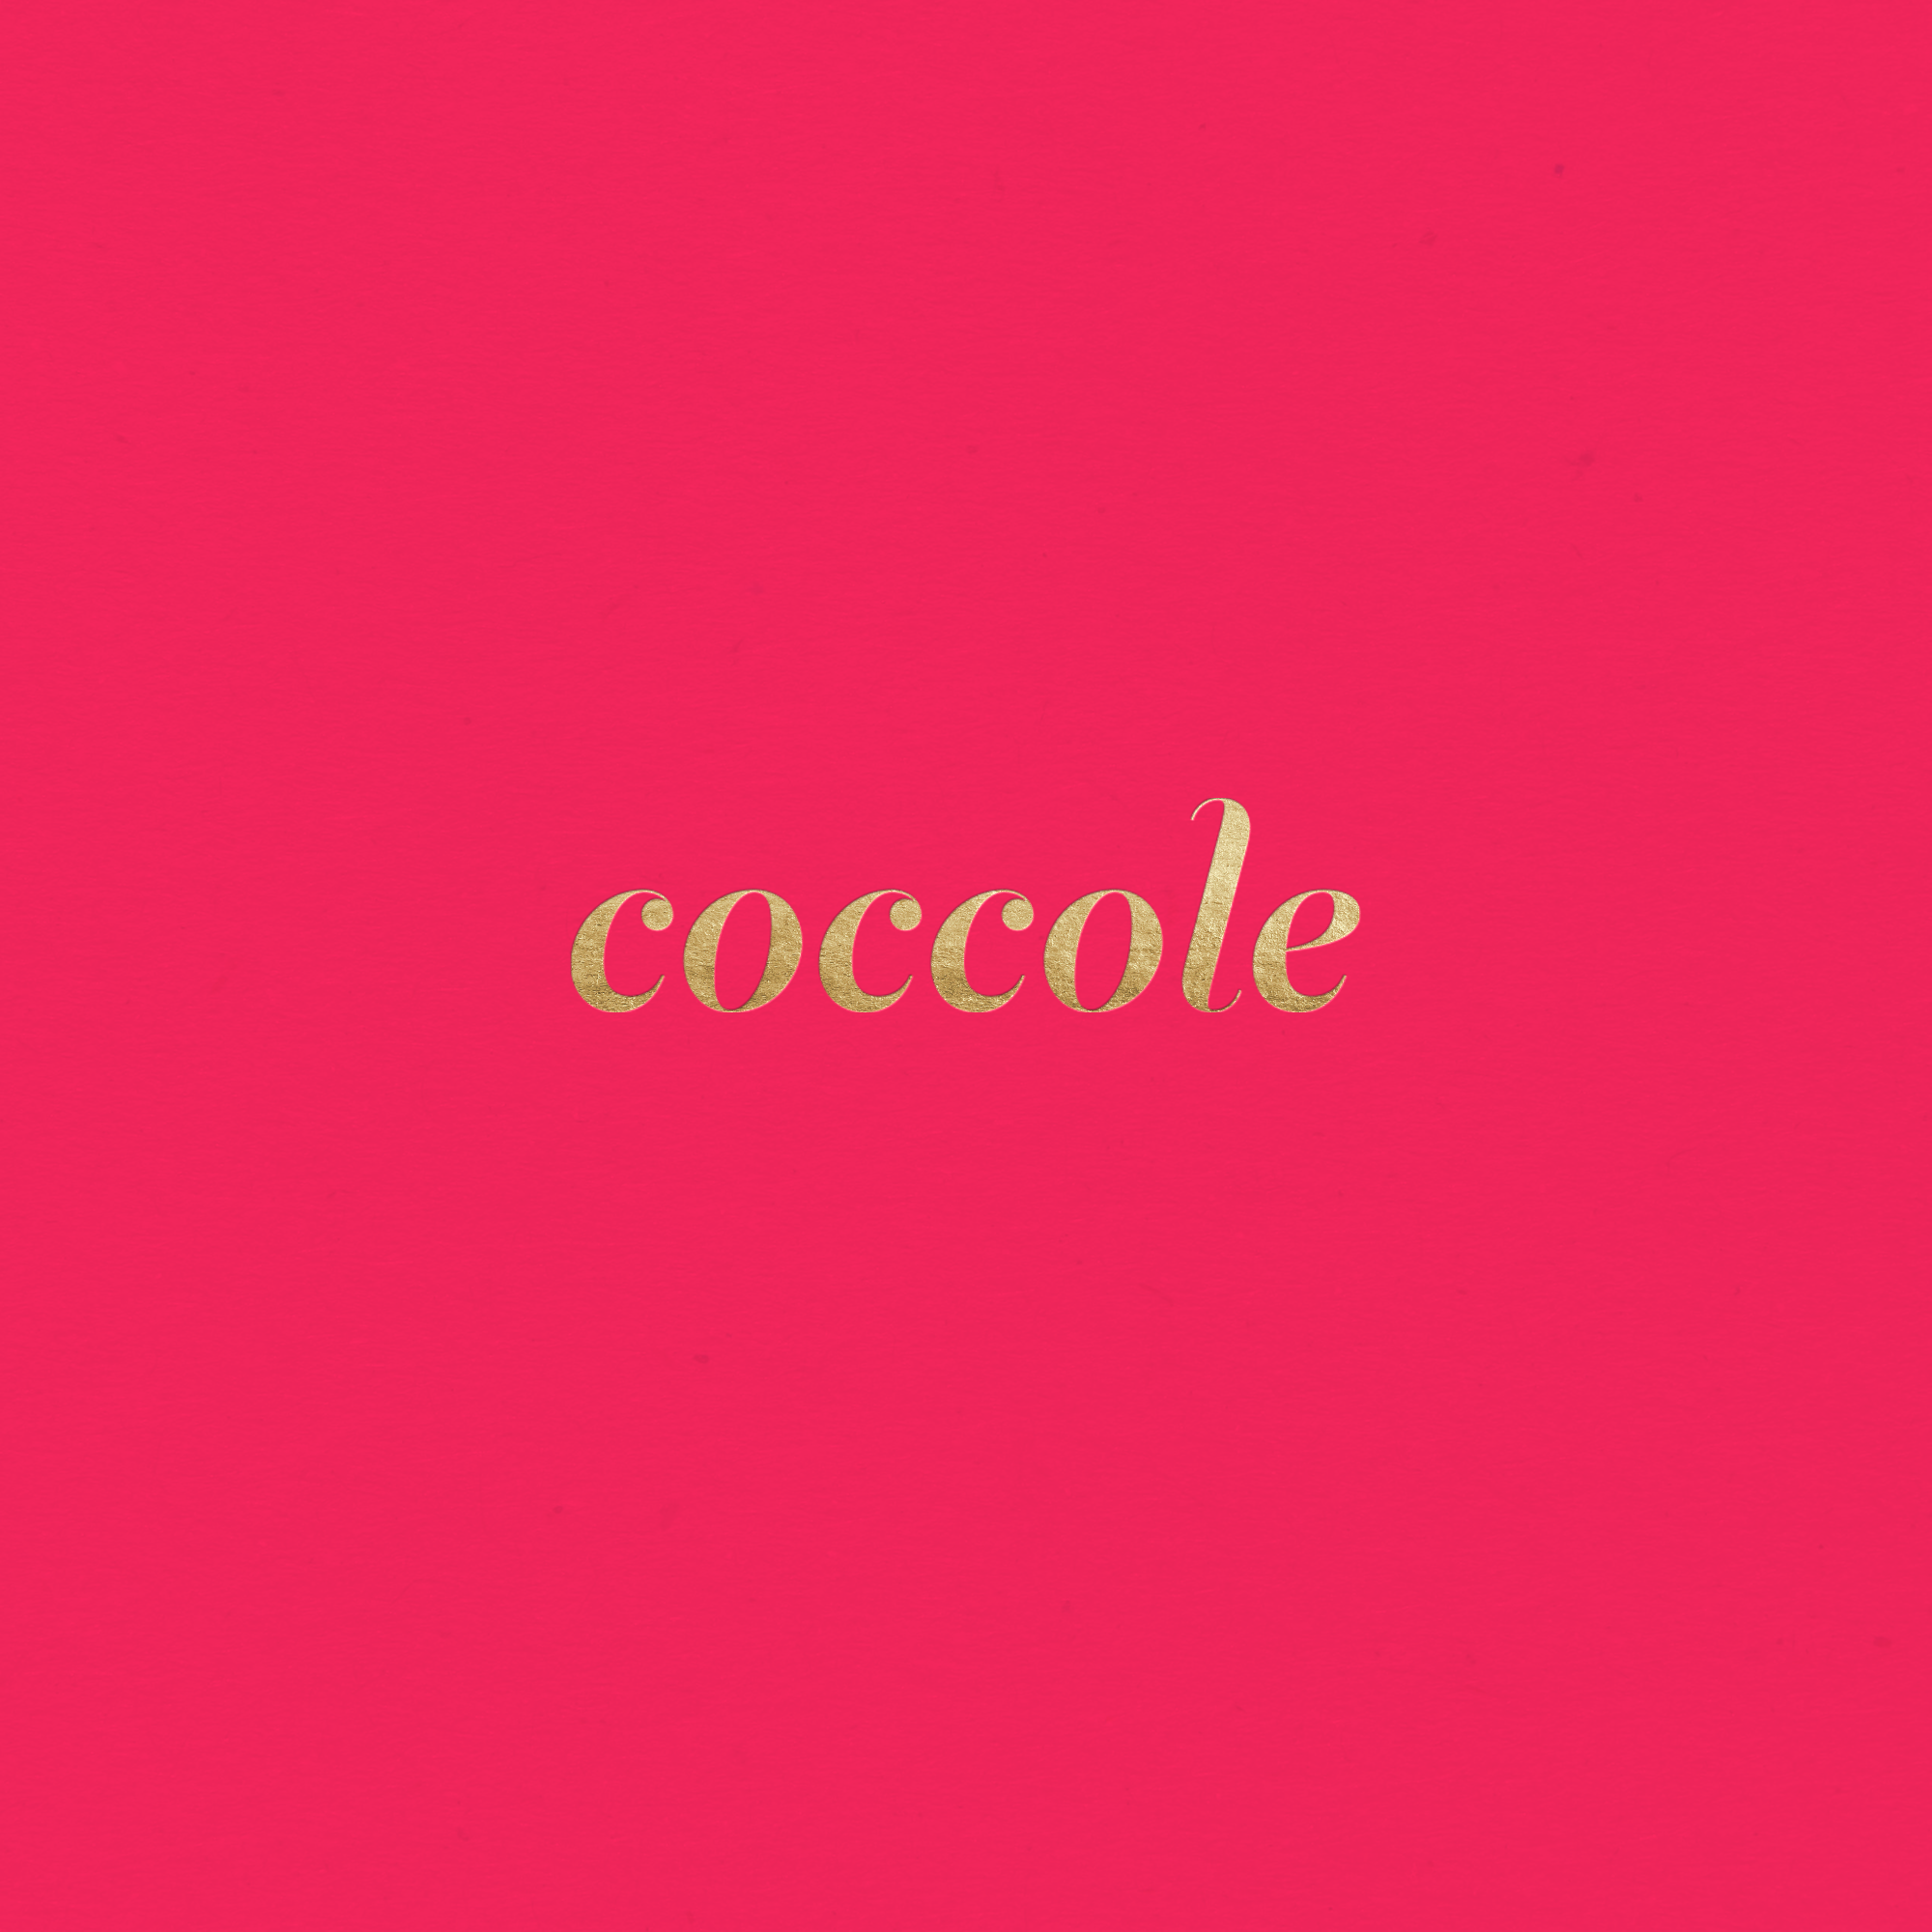 coccole 4.png